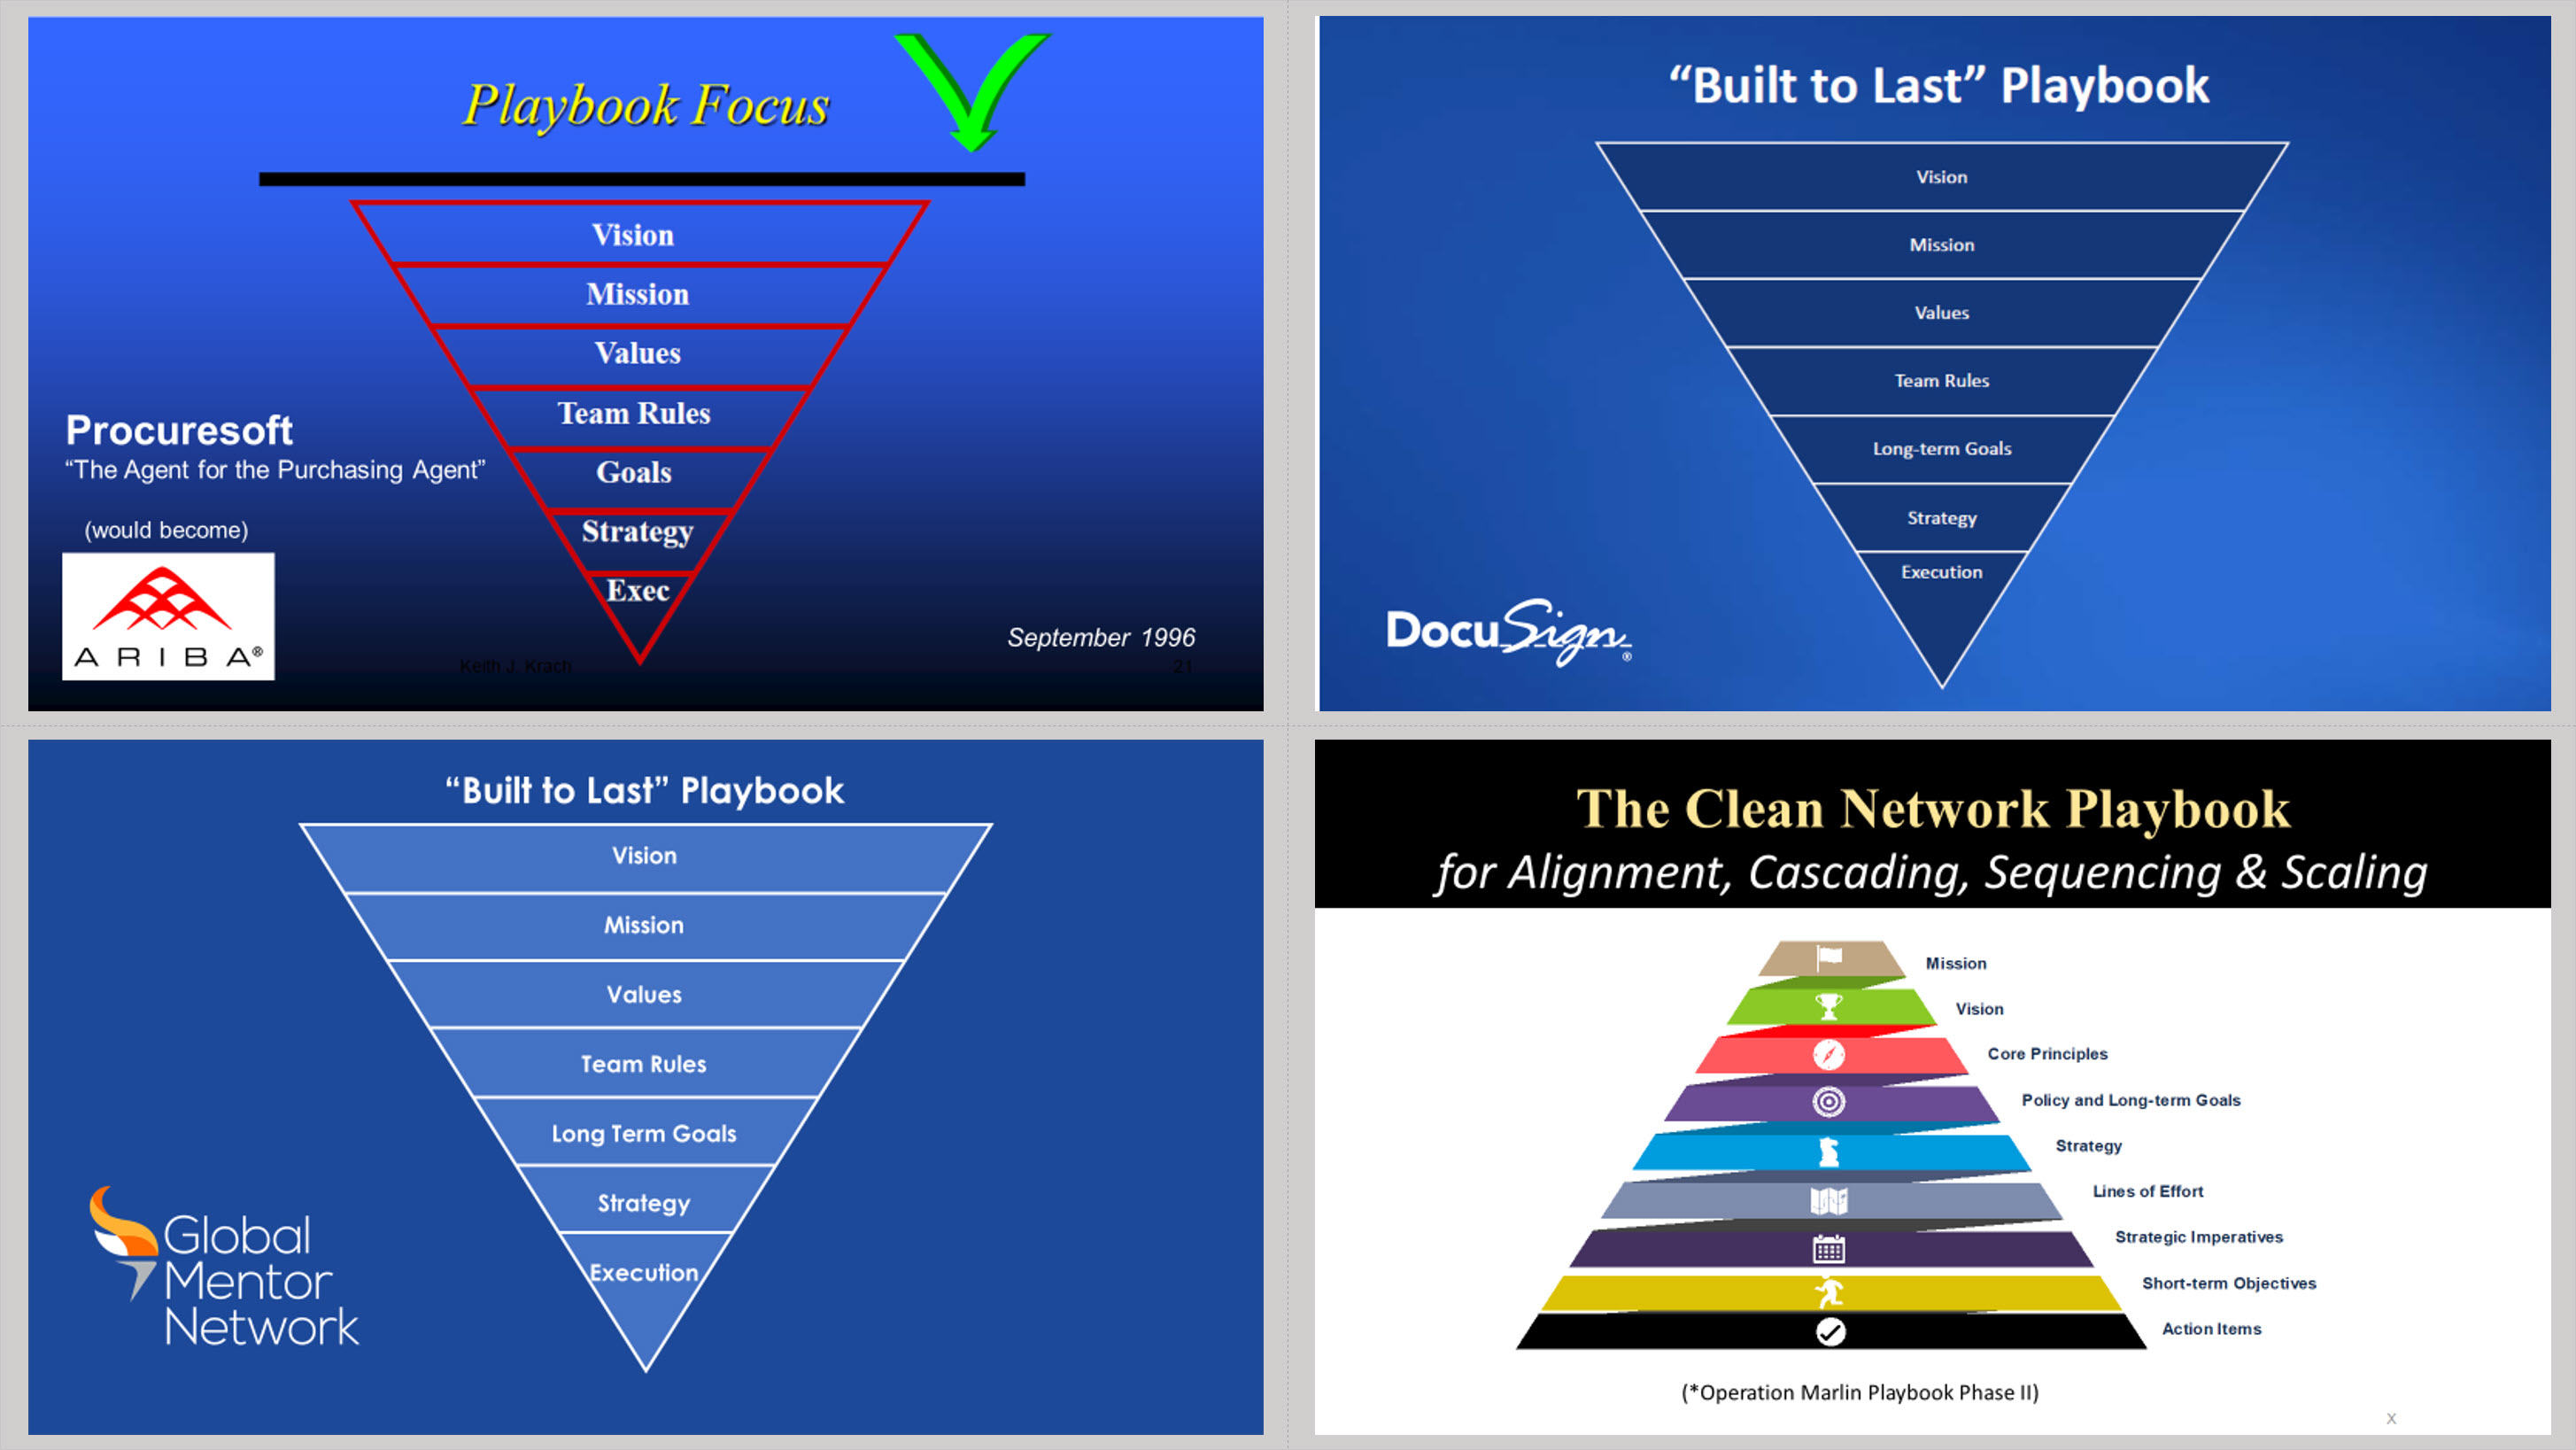 Playbook Pyramids